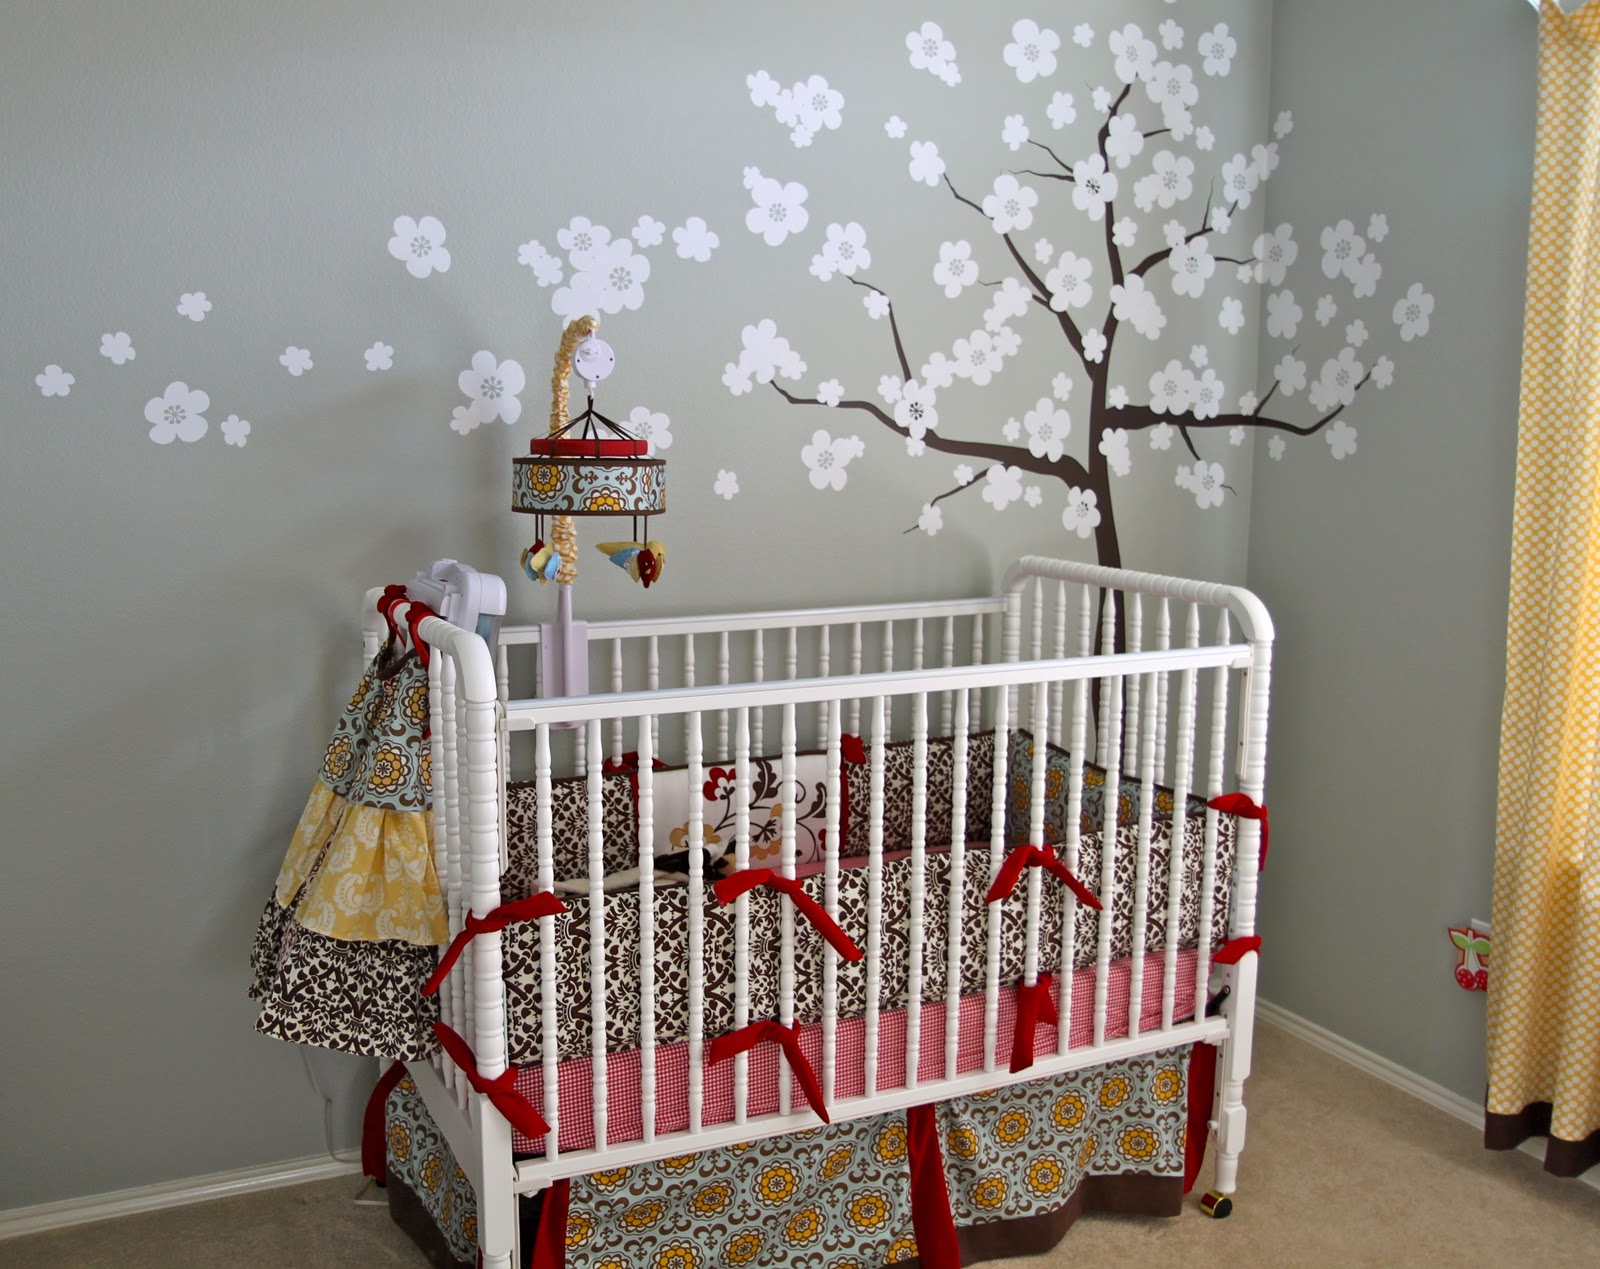 Baby nursery it 39 s quirky and so cute design dazzle for Baby wall decoration ideas